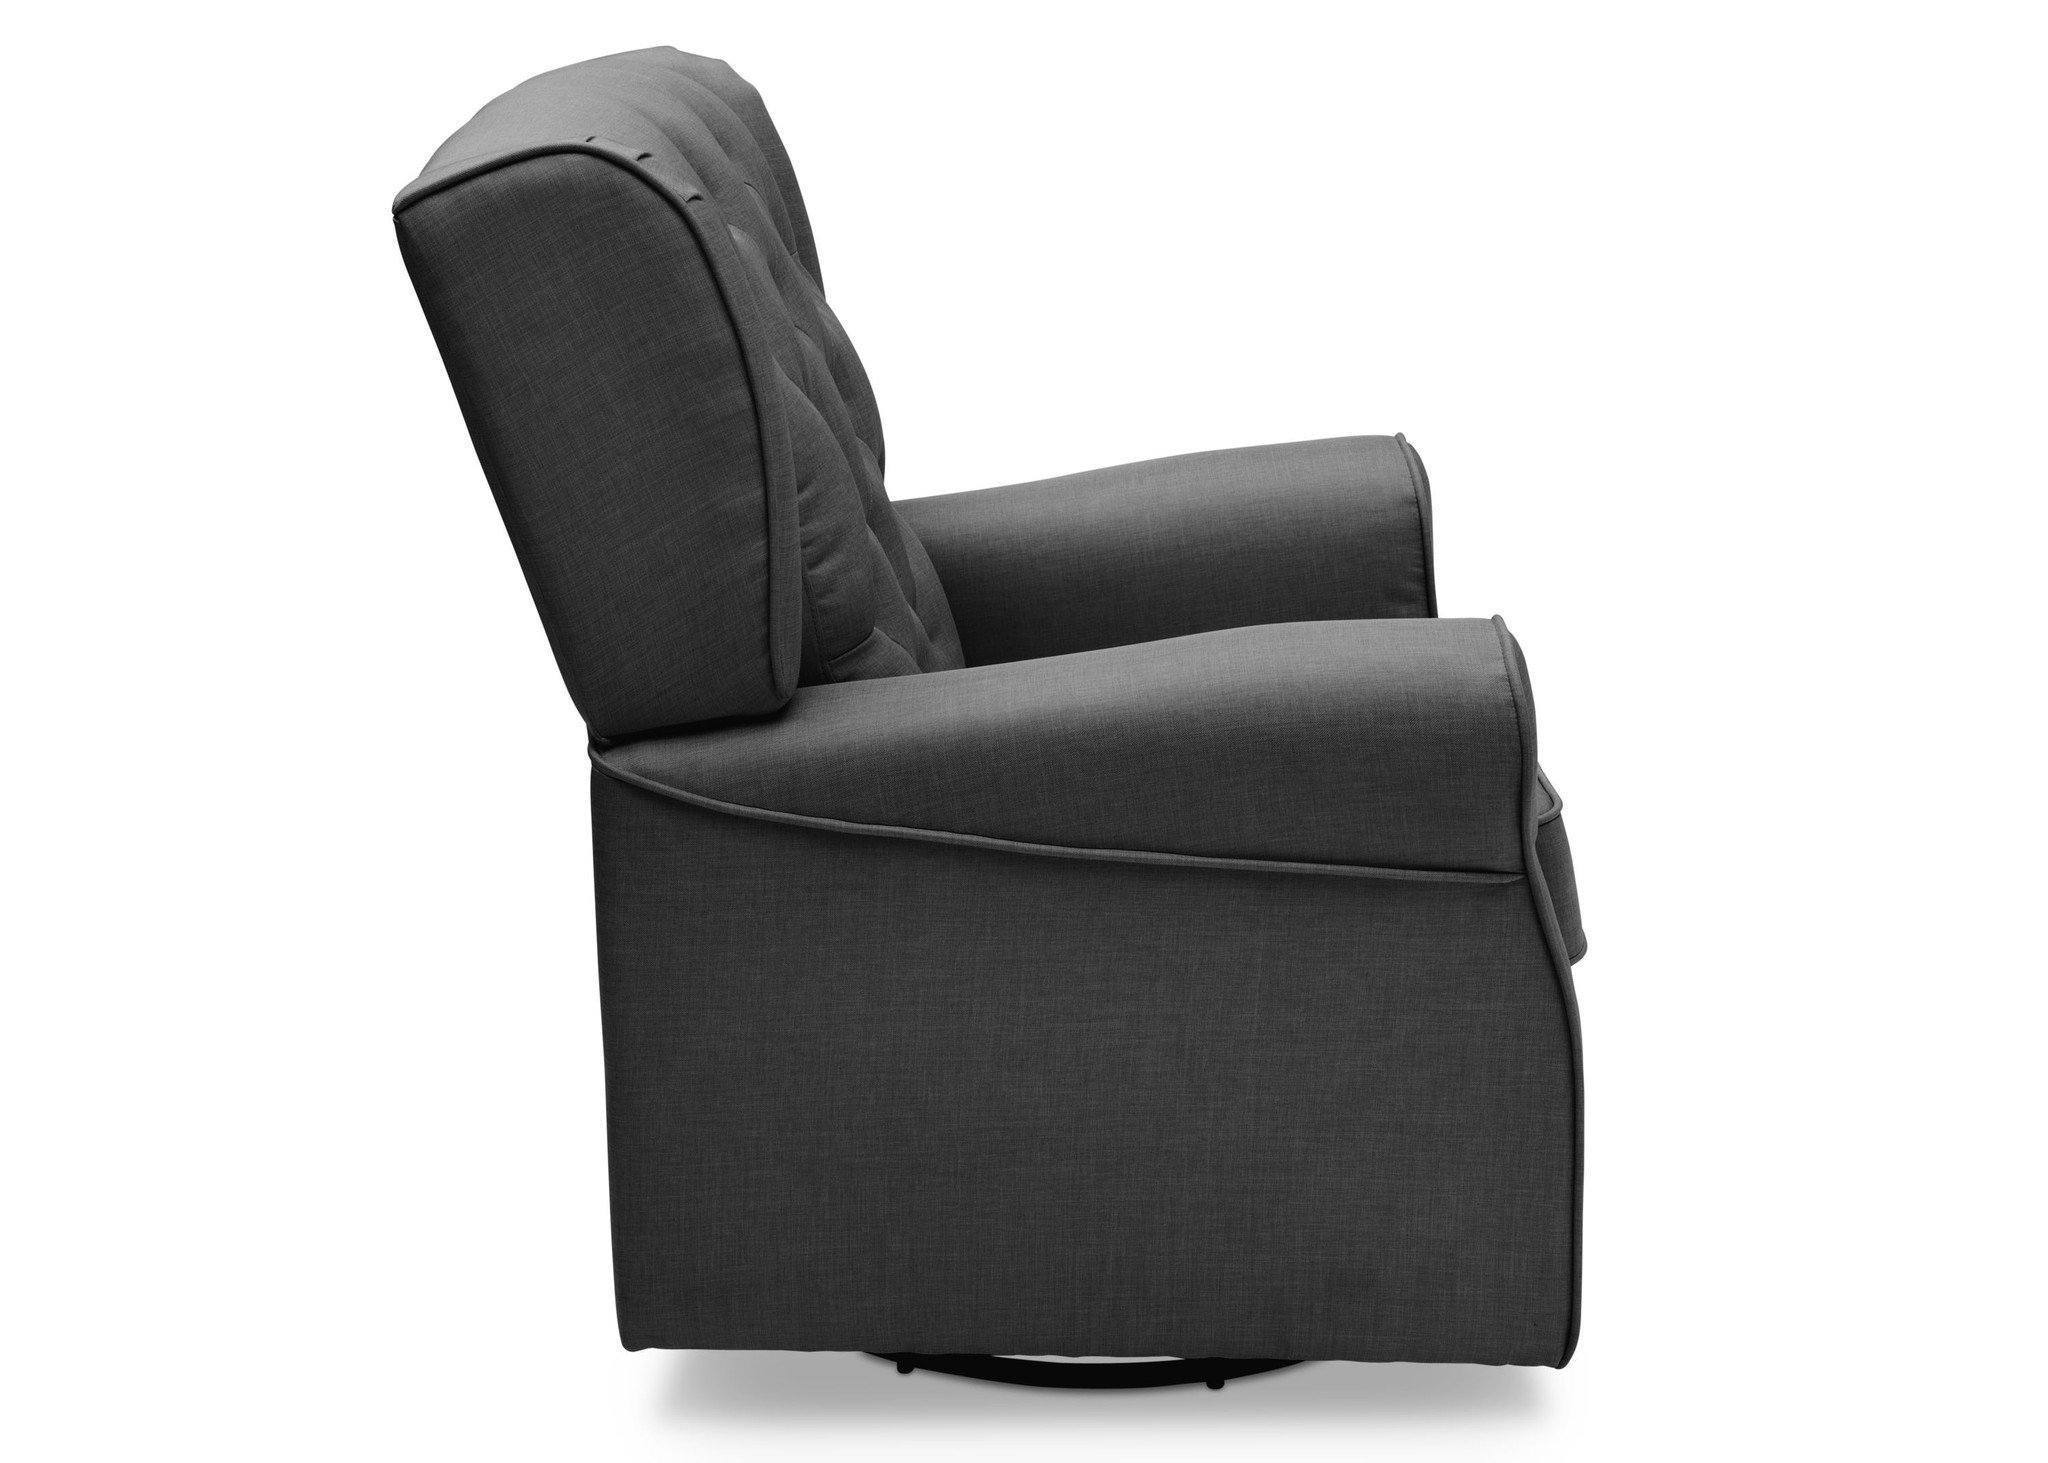 Delta Children Charcoal Grey (931) Emma Tufted Glider Full Right Side View c3c